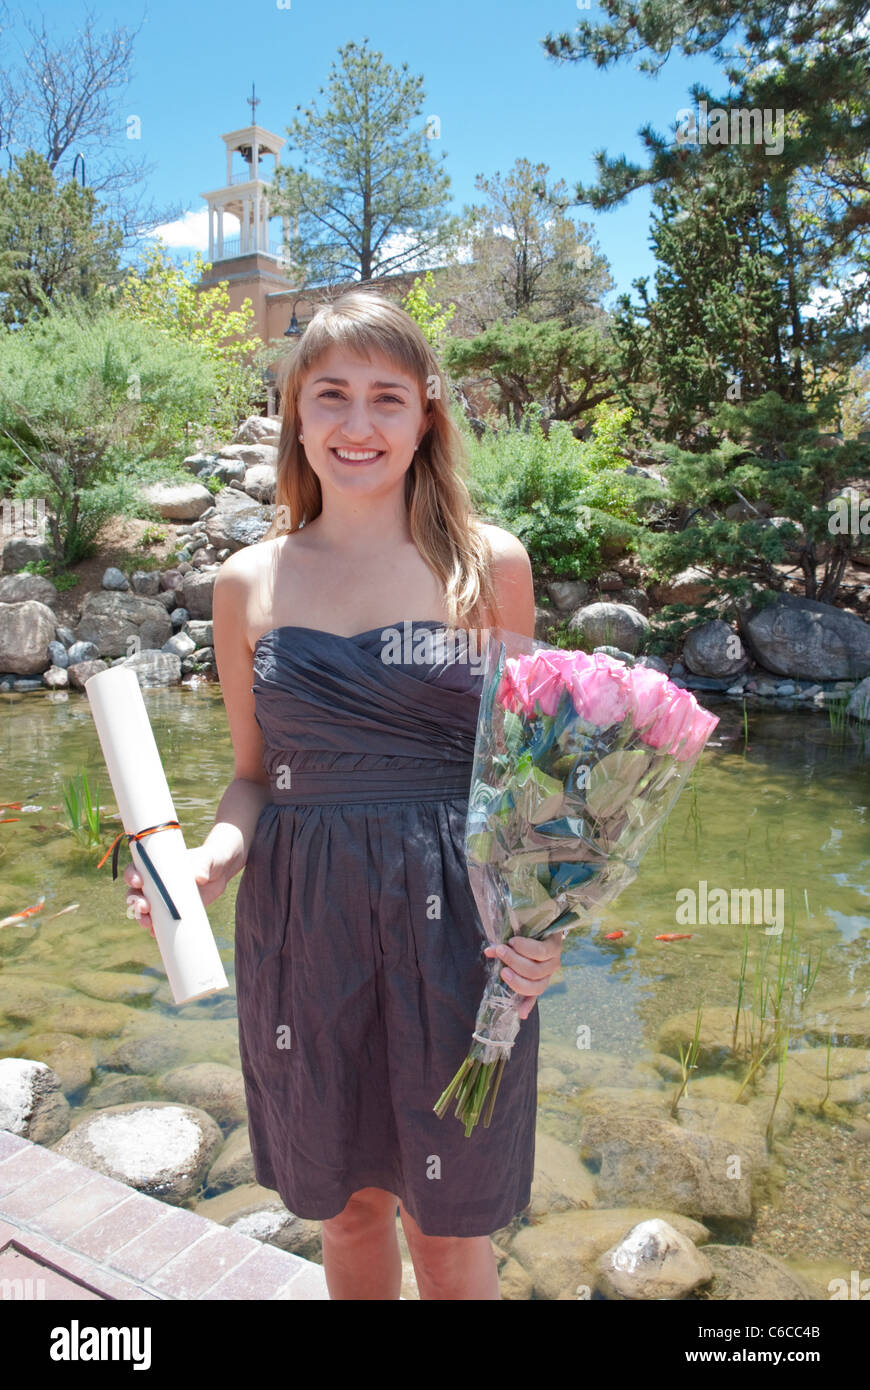 A graduating senior at St. Johns College in Santa Fe poses with her diploma and a bouquet of roses. - Stock Image